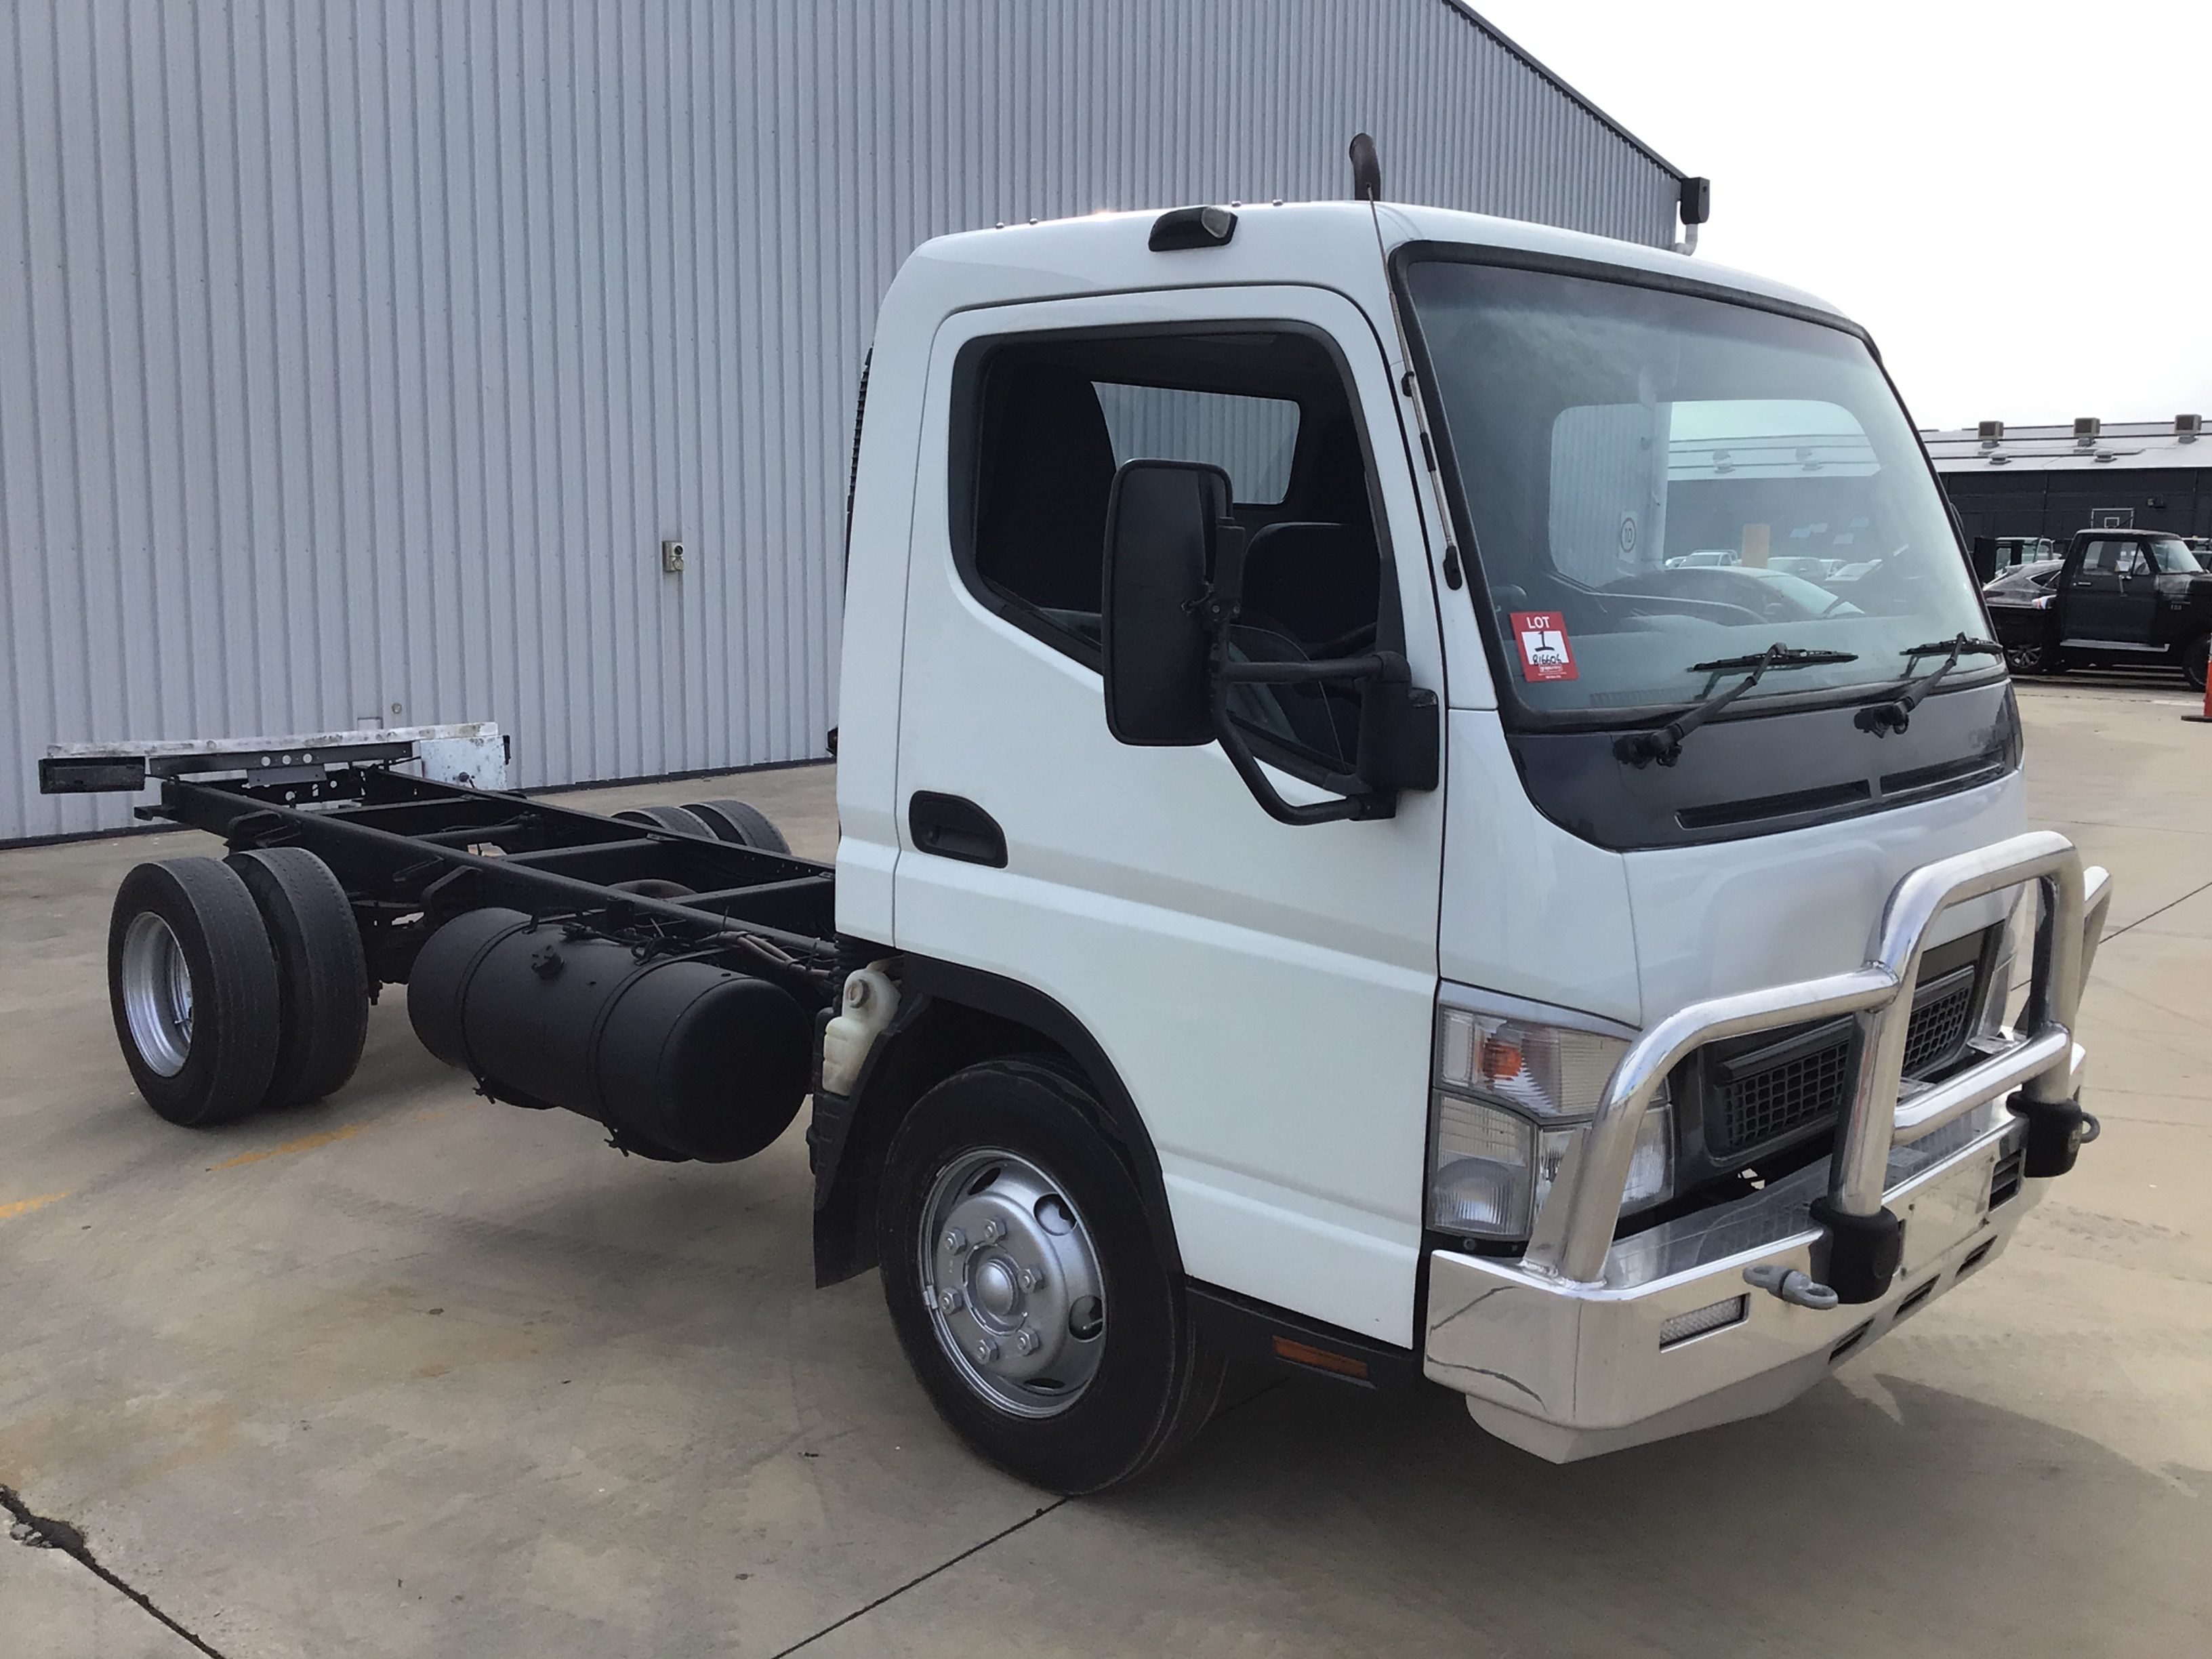 2005 Mitsubishi Canter 7/800 4 x 2 Cab Chassis Truck